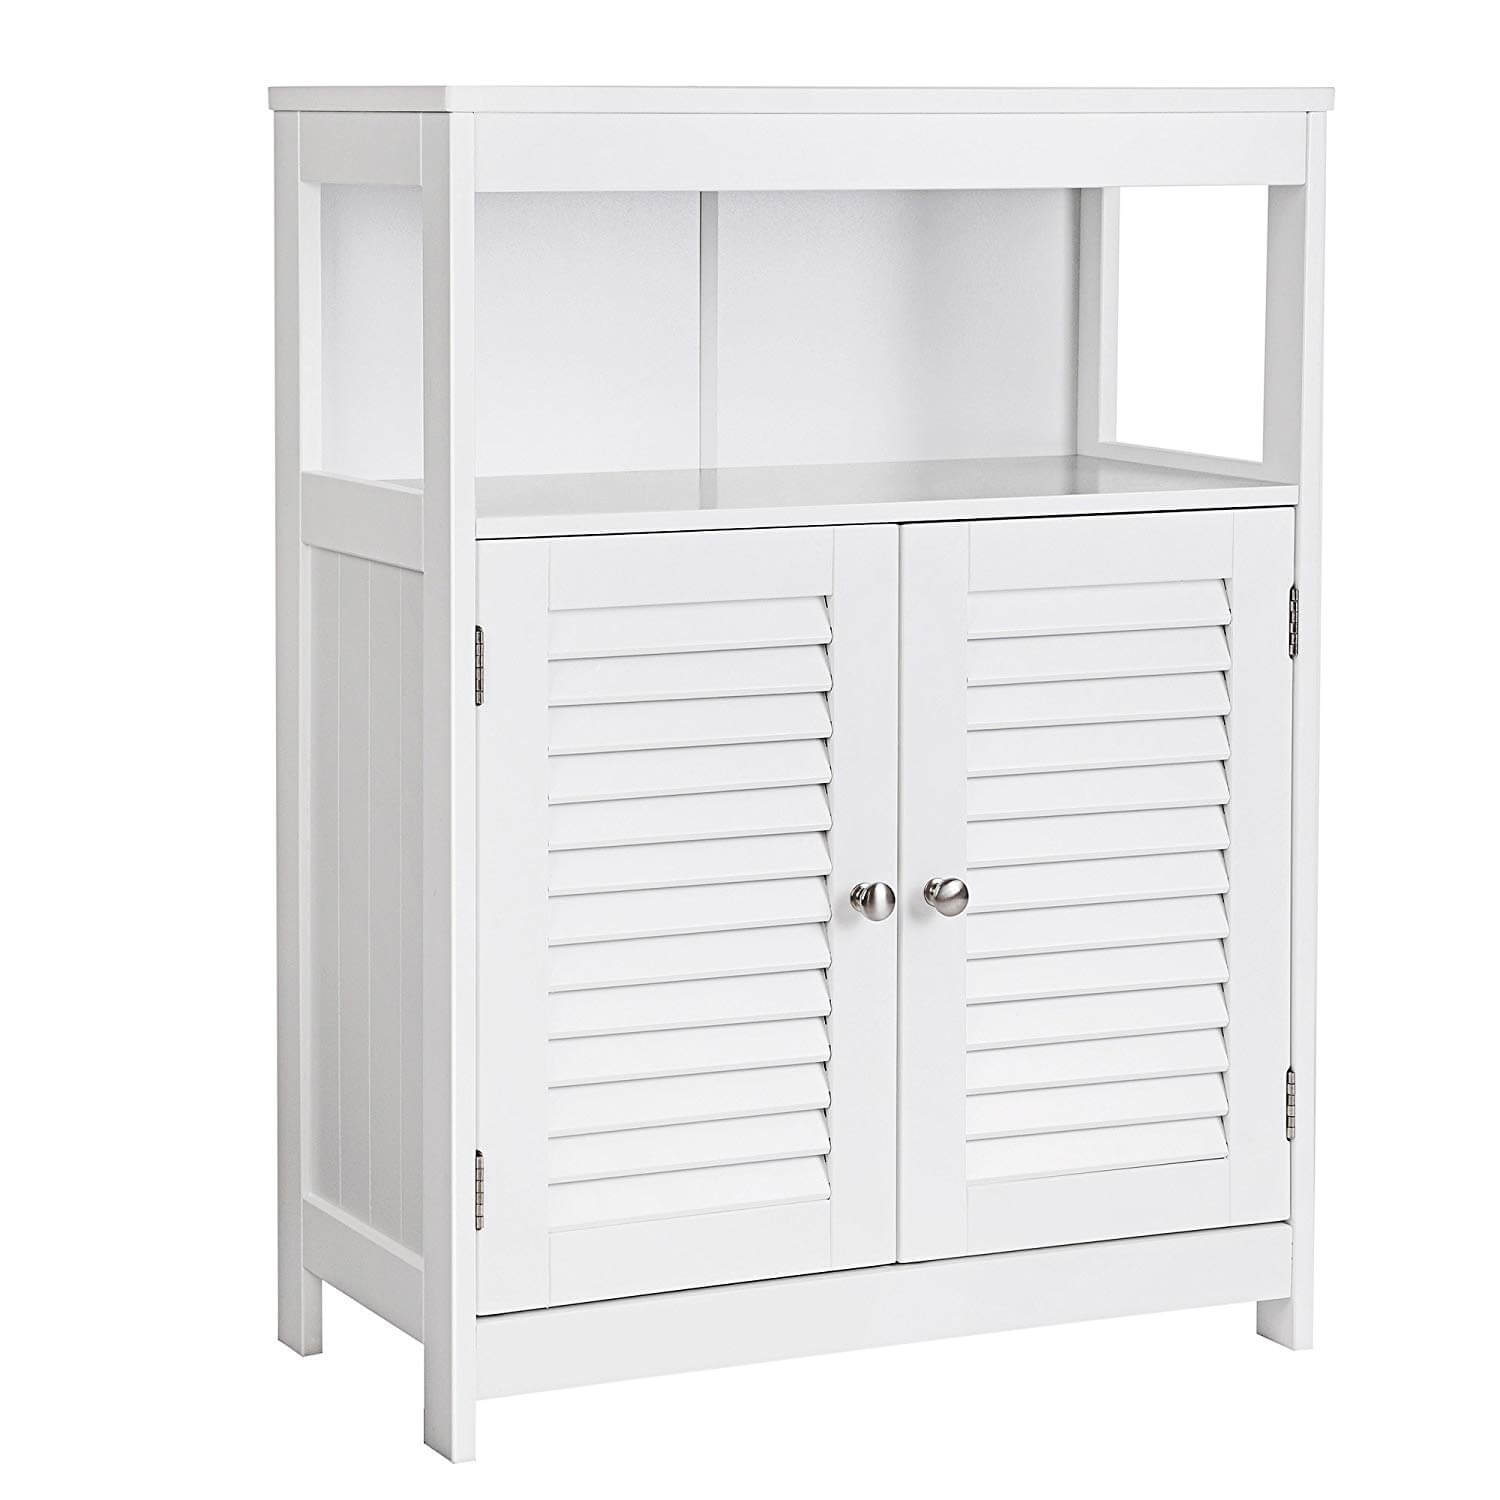 Floor Storage Cabinet for Laundry Rooms